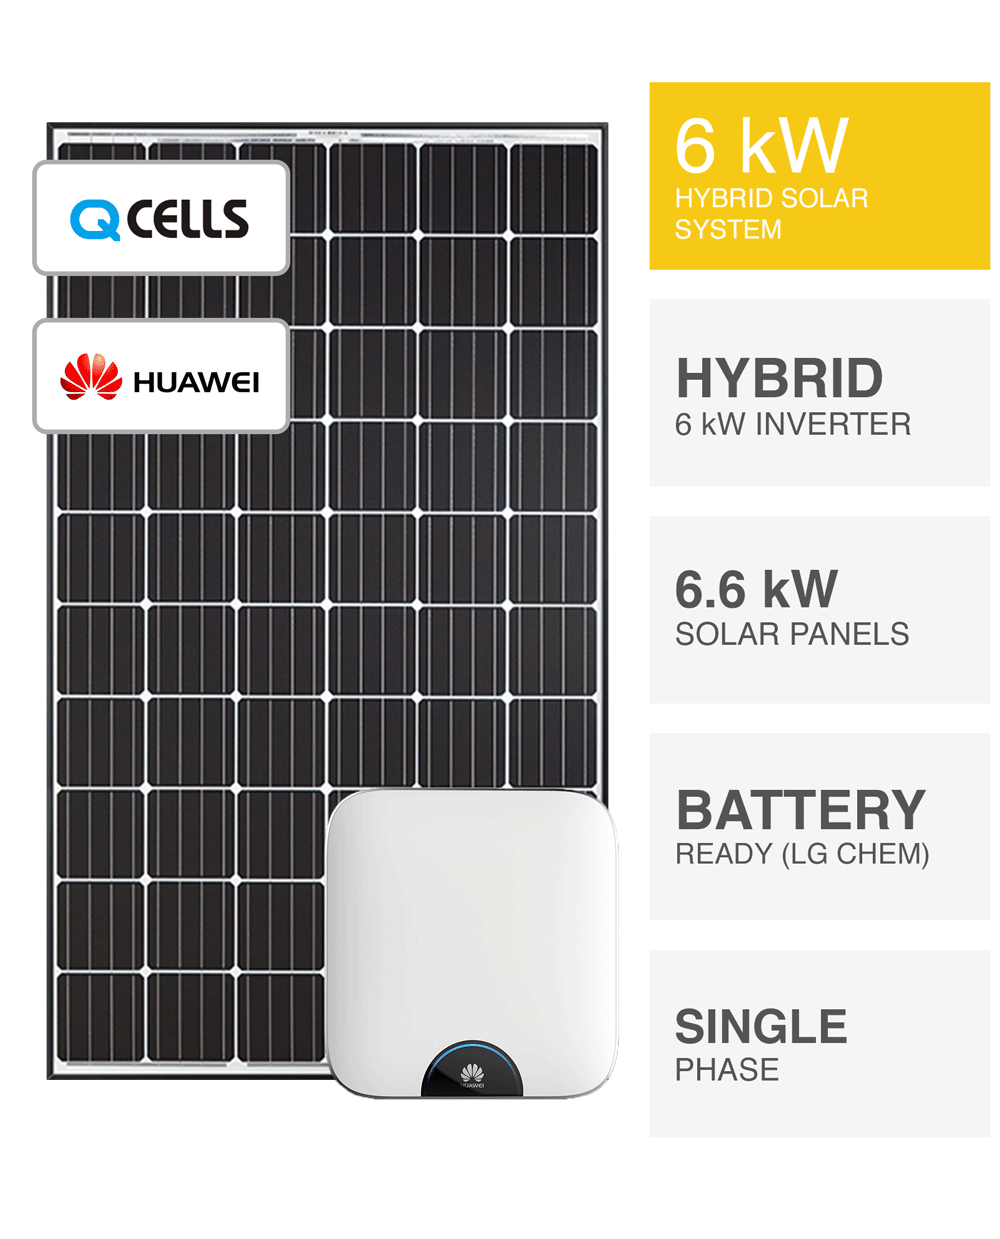 6kw Hybrid Solar System Battery Ready Save More